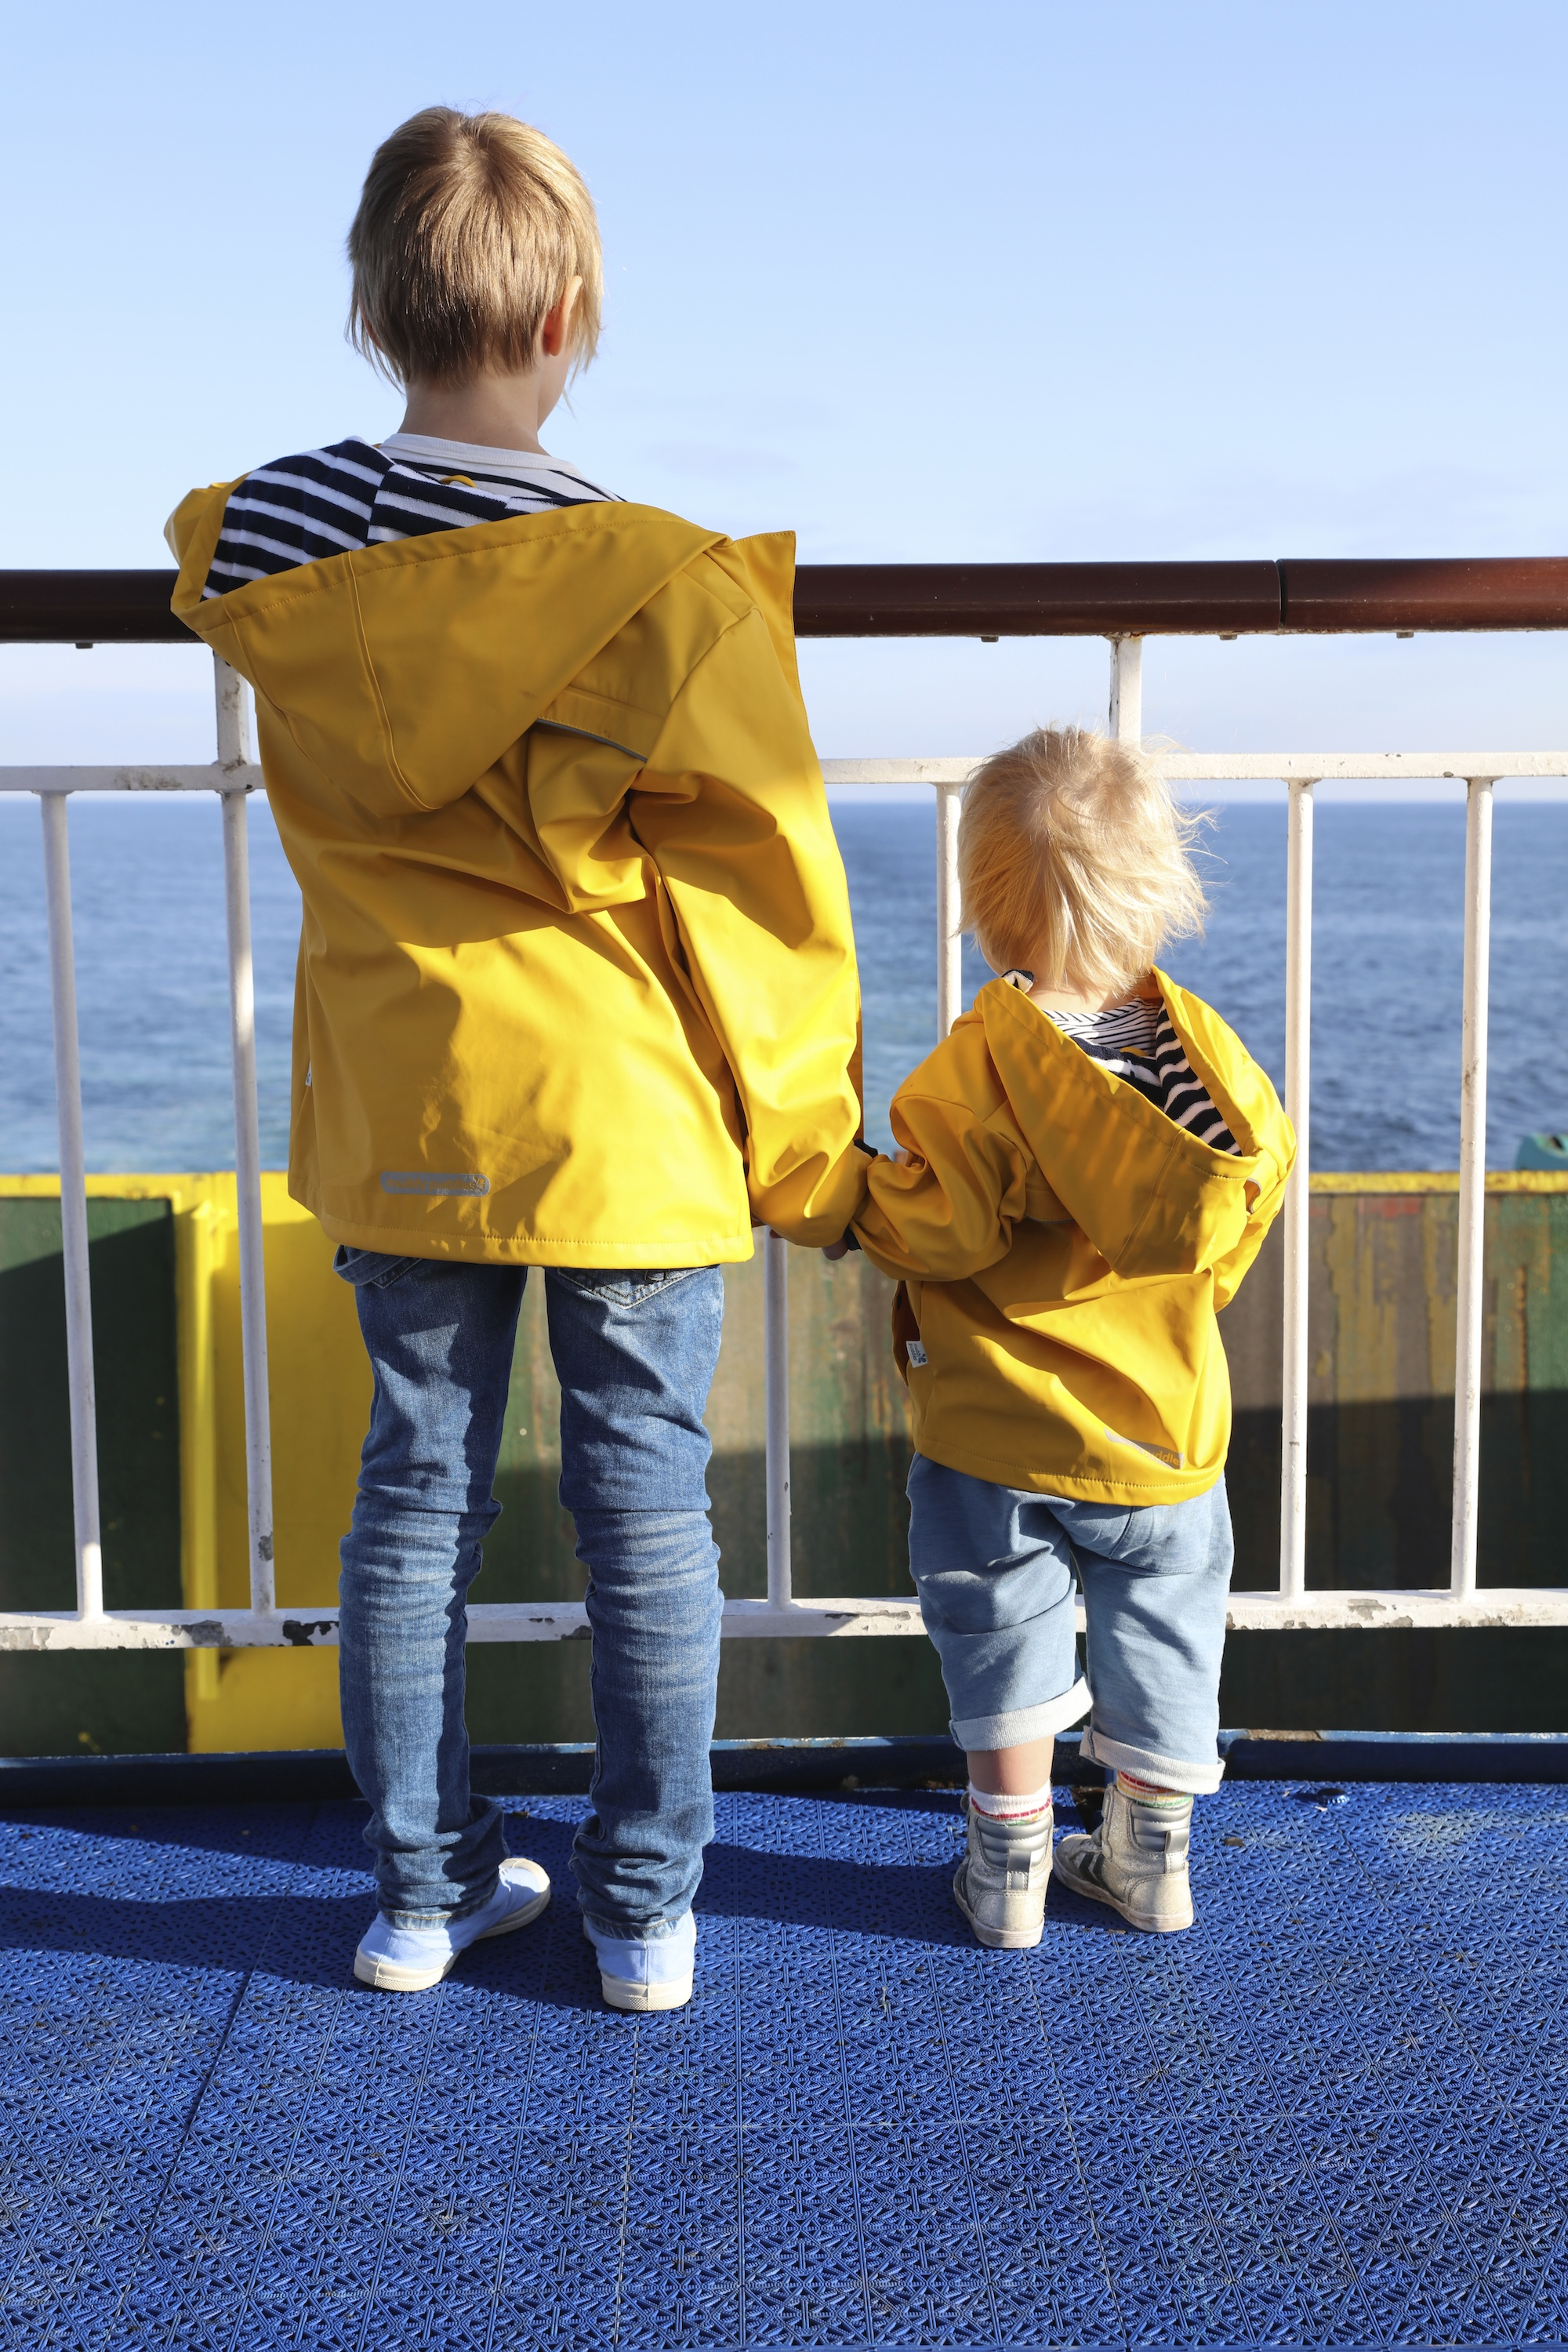 Muddy_pudles_yellow_raincoat_mac_unisex